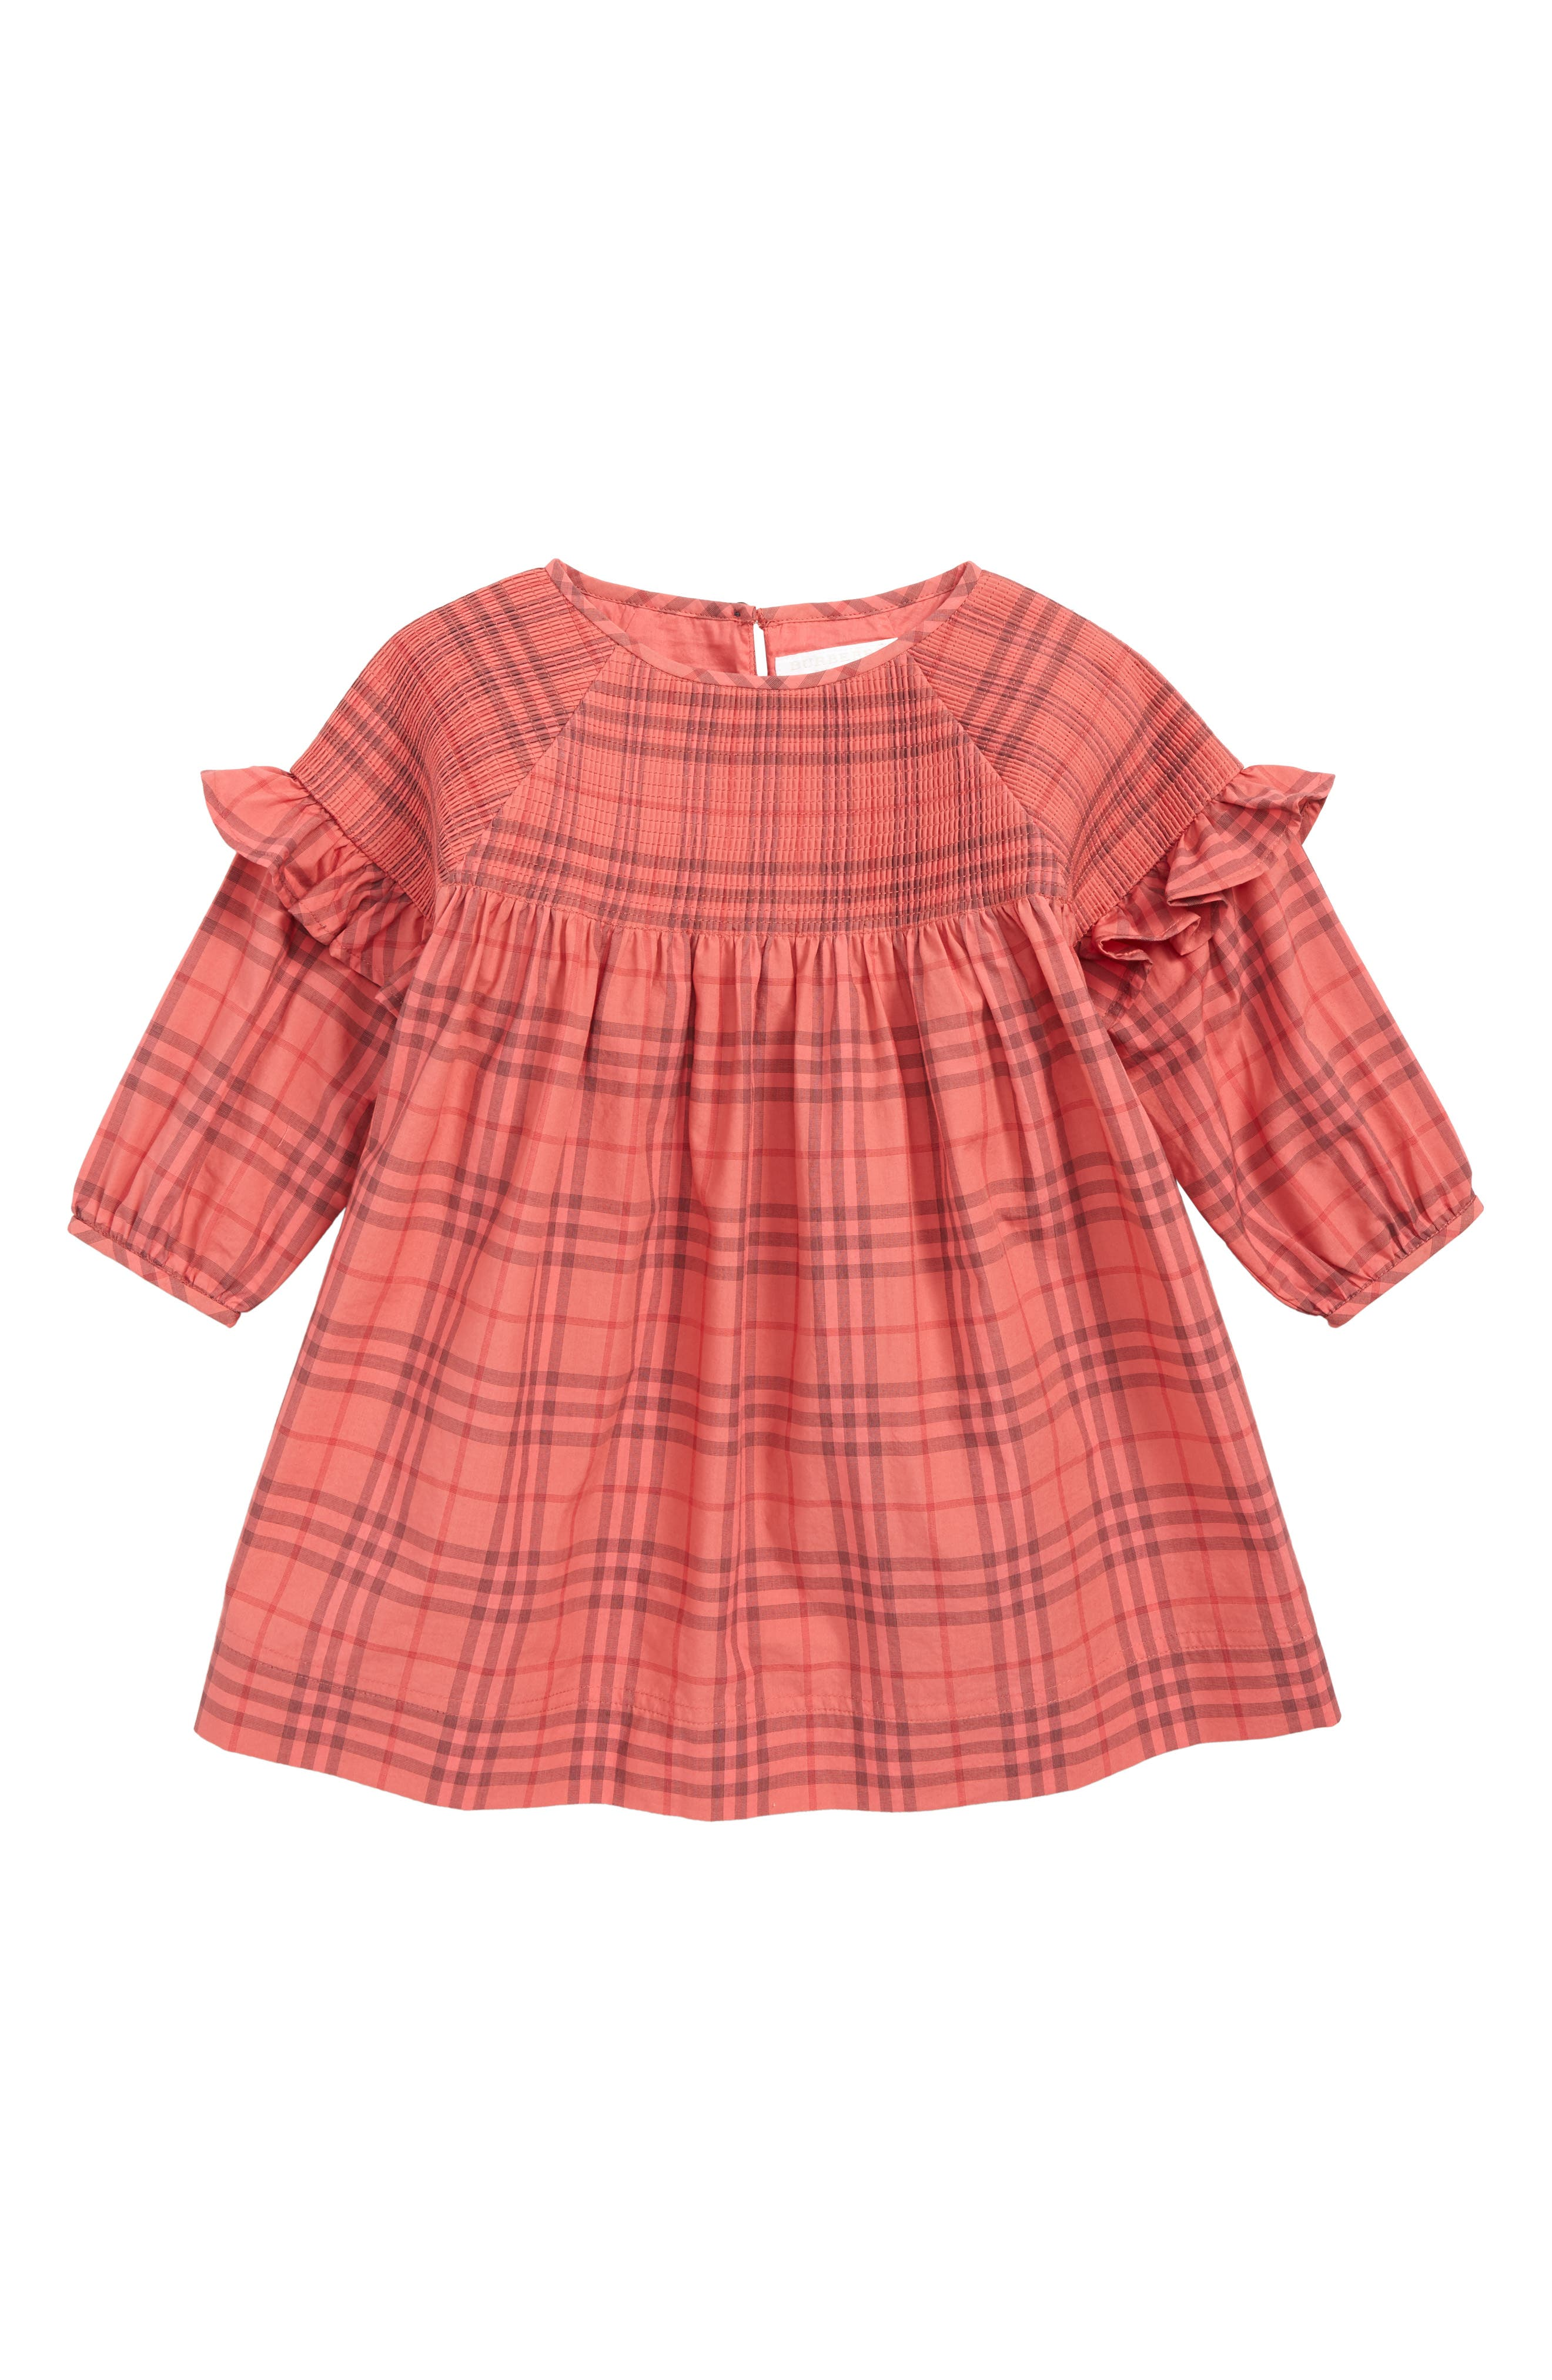 BURBERRY, Mini Loralie Ruffle Detail Check Cotton Dress, Main thumbnail 1, color, CORAL RED